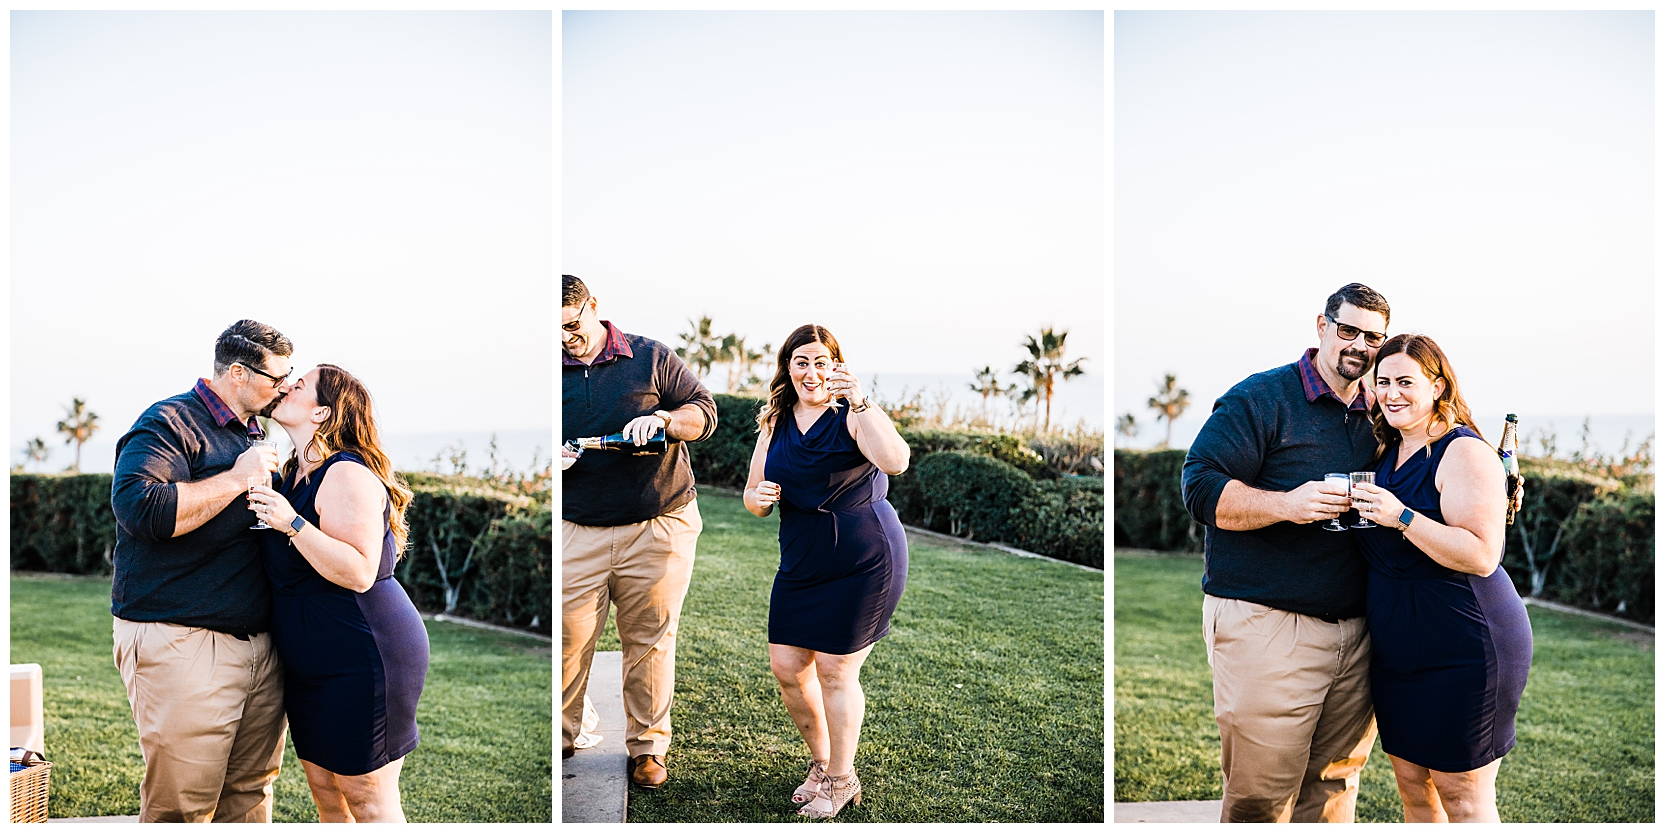 jessicafredericks_huntingtonbeach_proposal_sunset_engagement_0017.jpg